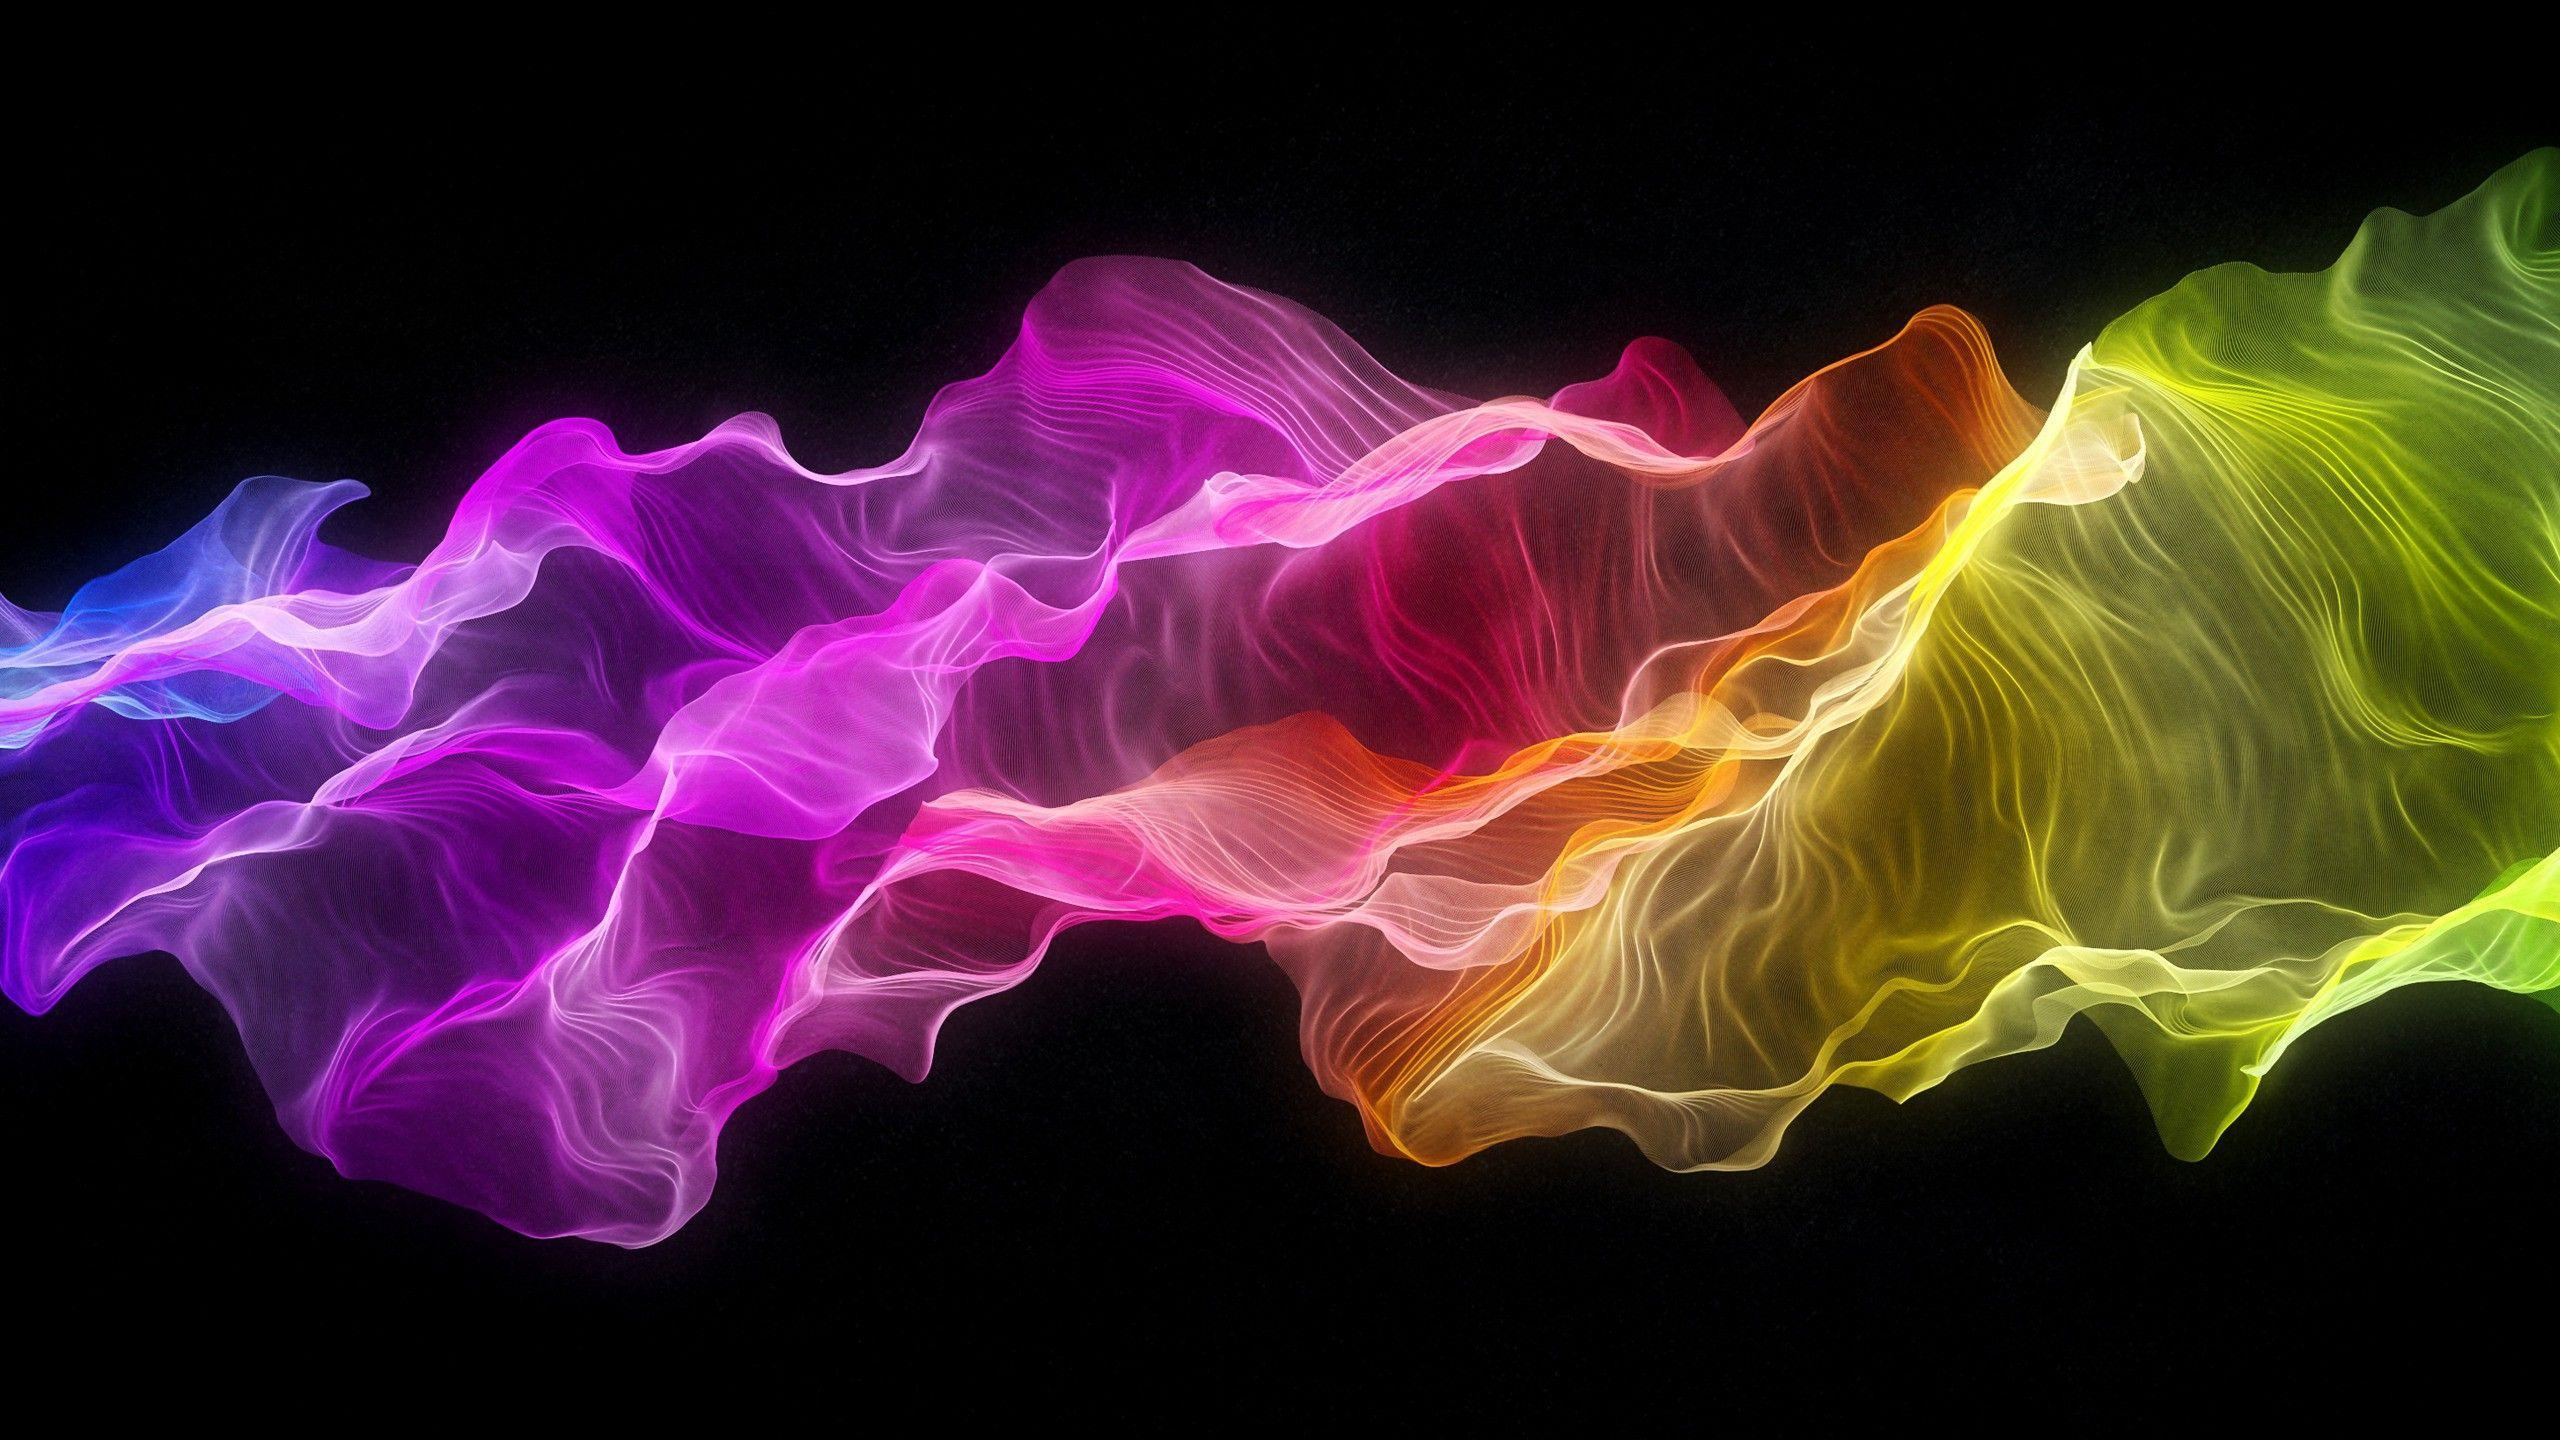 neon flame motorcycle wallpaper - photo #12